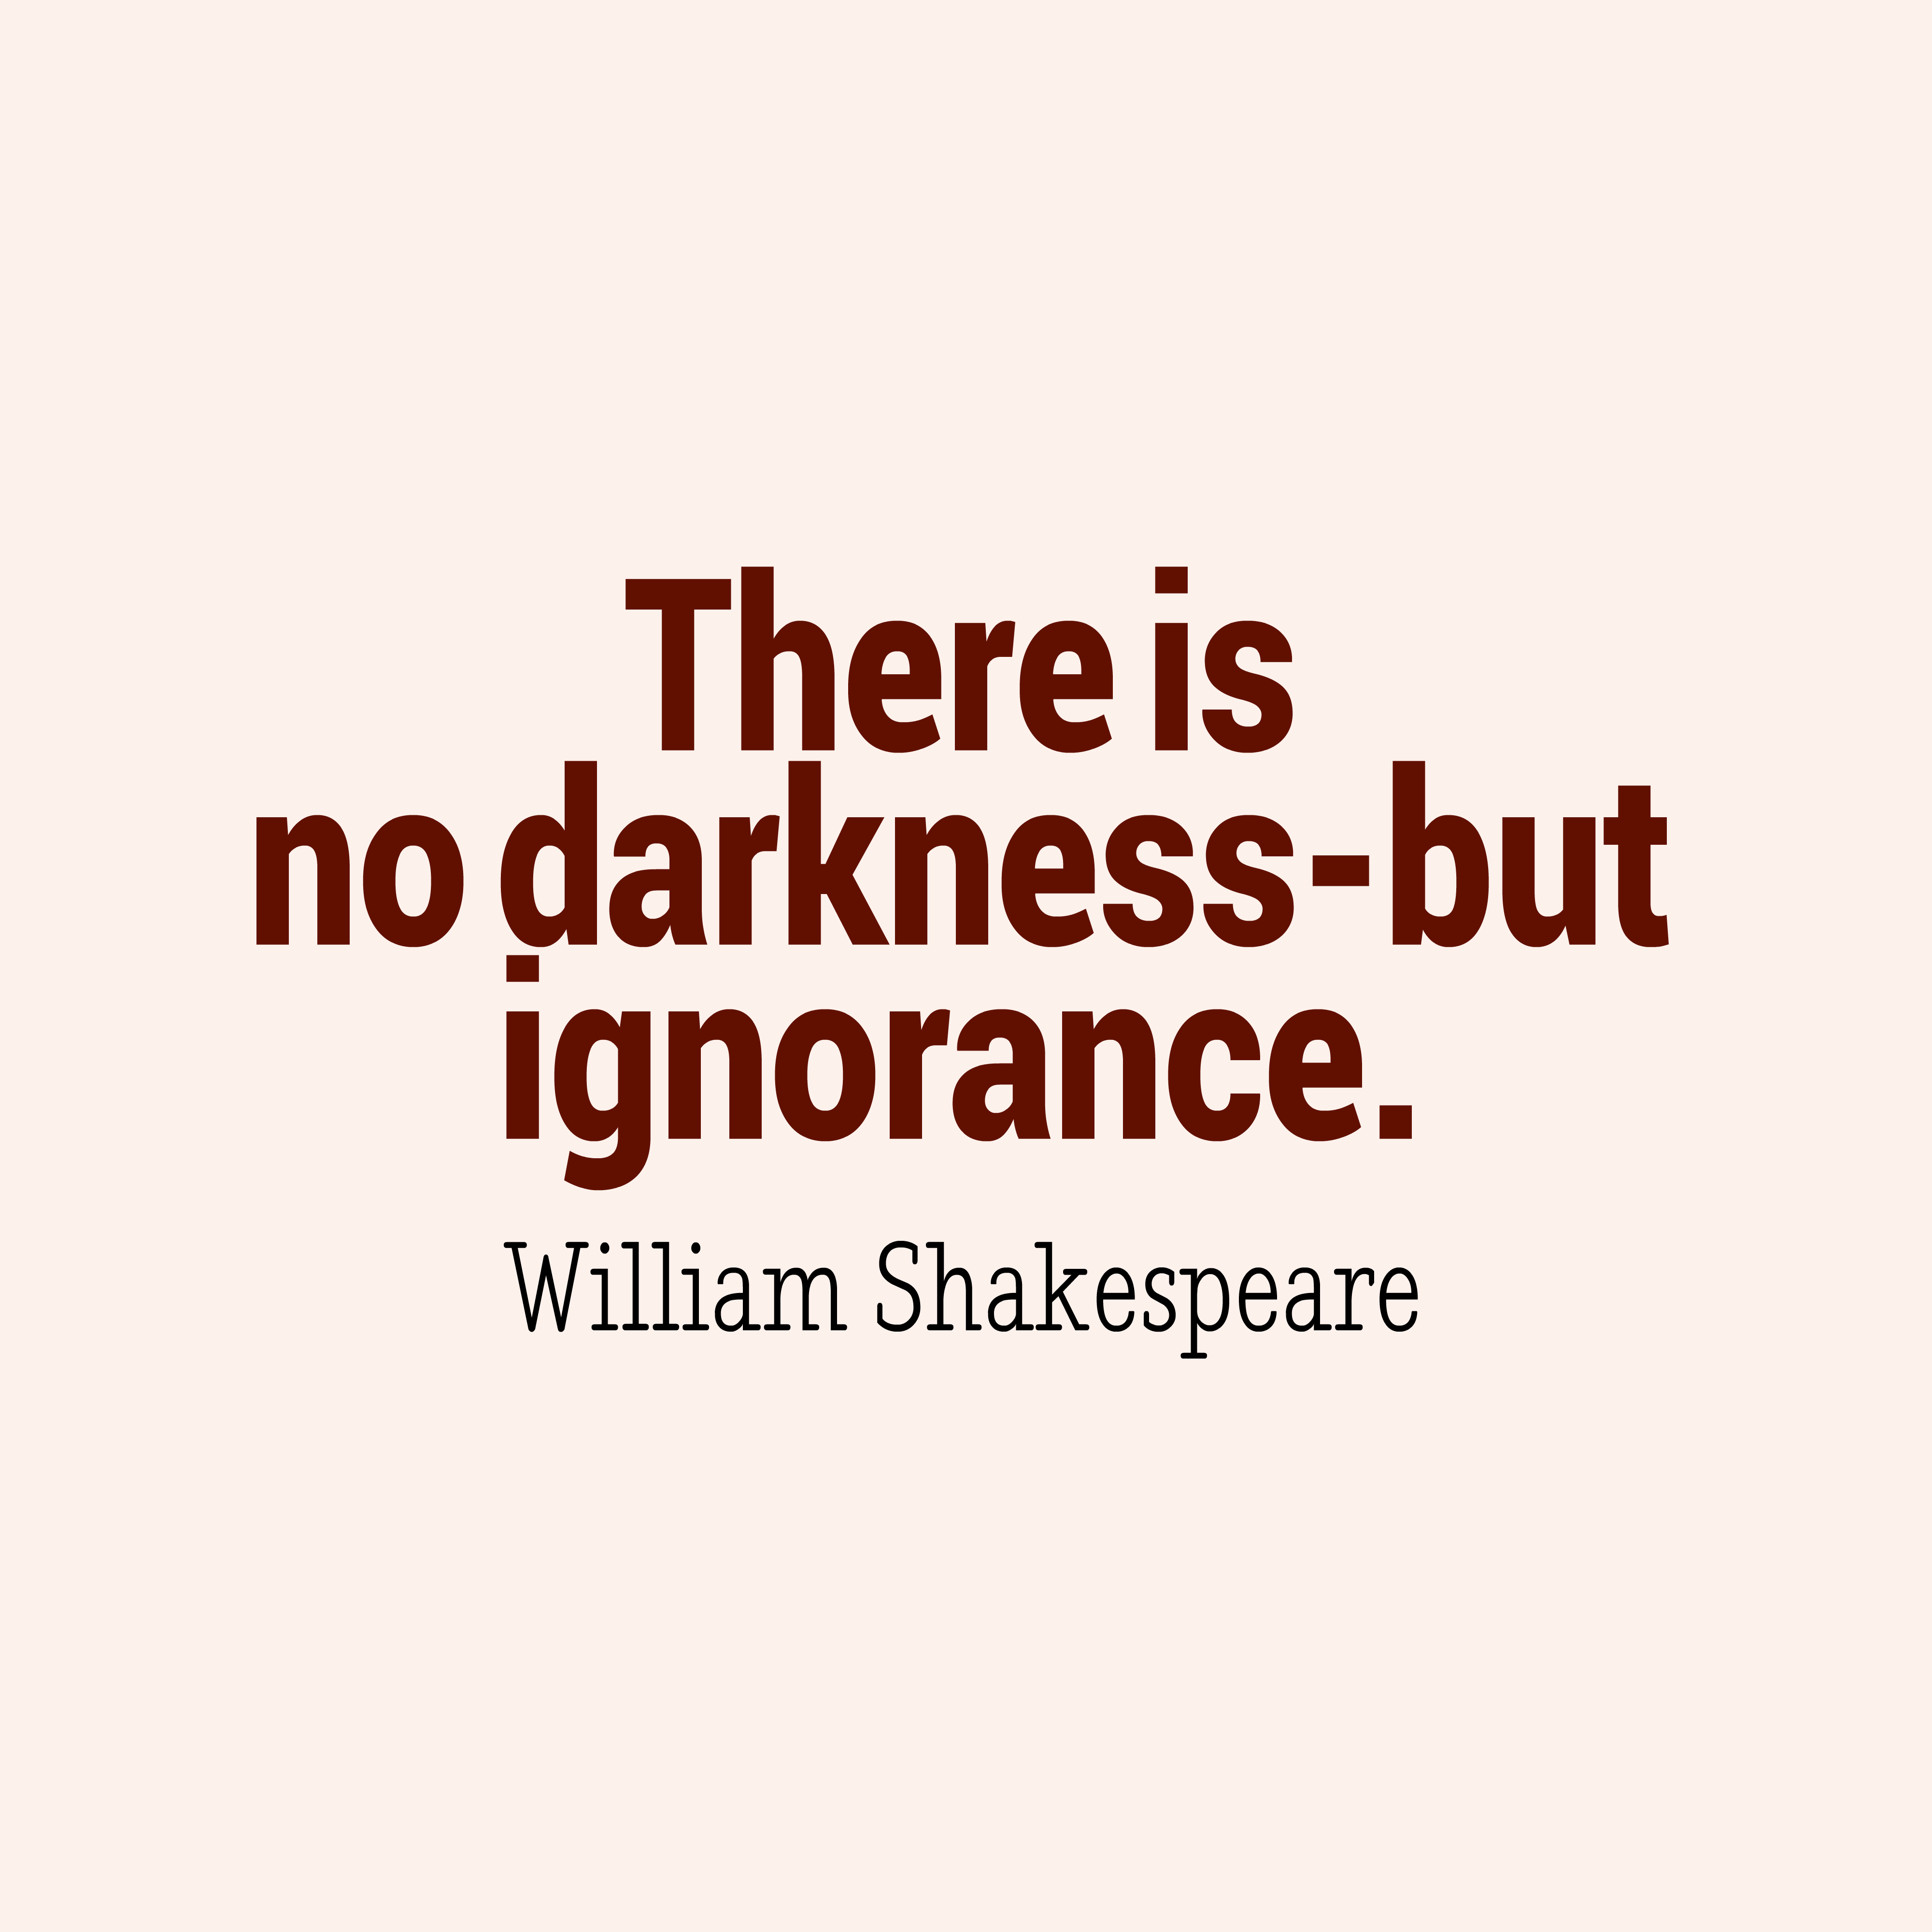 Love Quotes About Life: William Shakespeare Quotes - Google Search